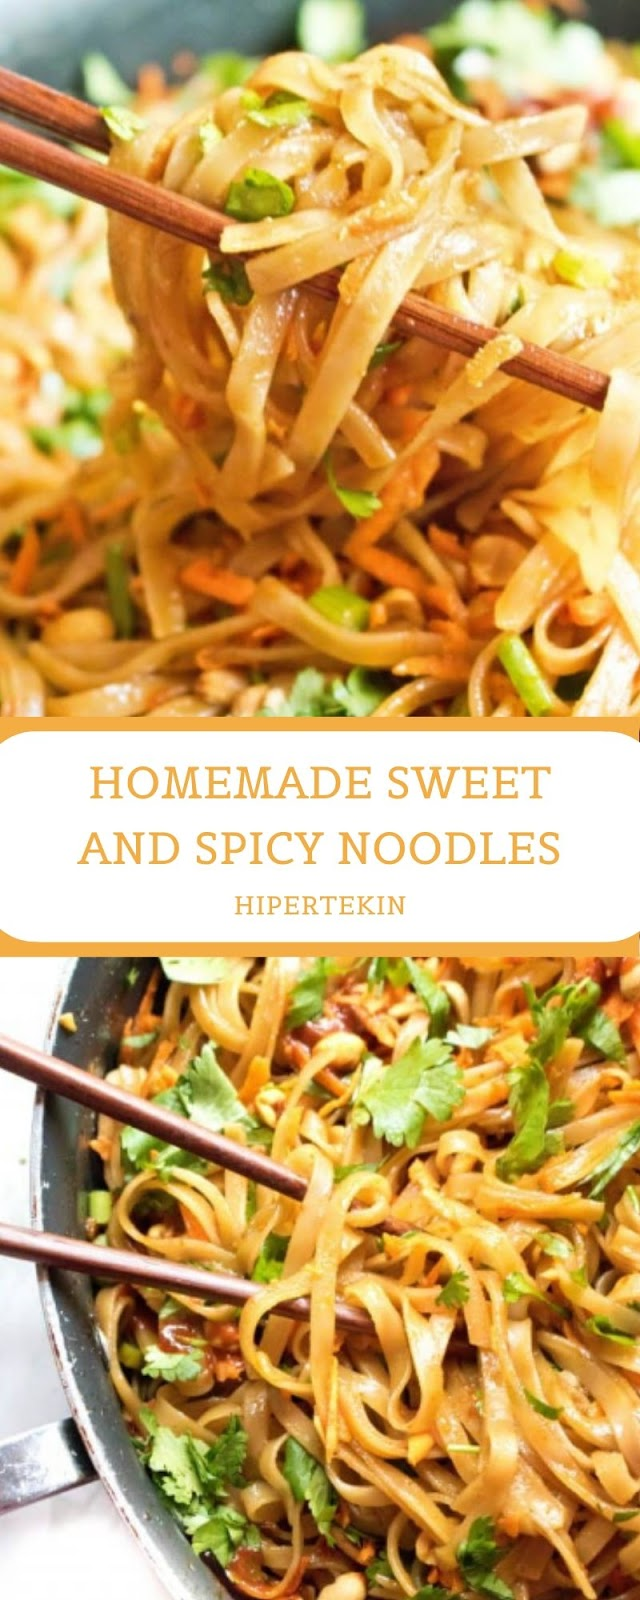 HOMEMADE SWEET AND SPICY NOODLES